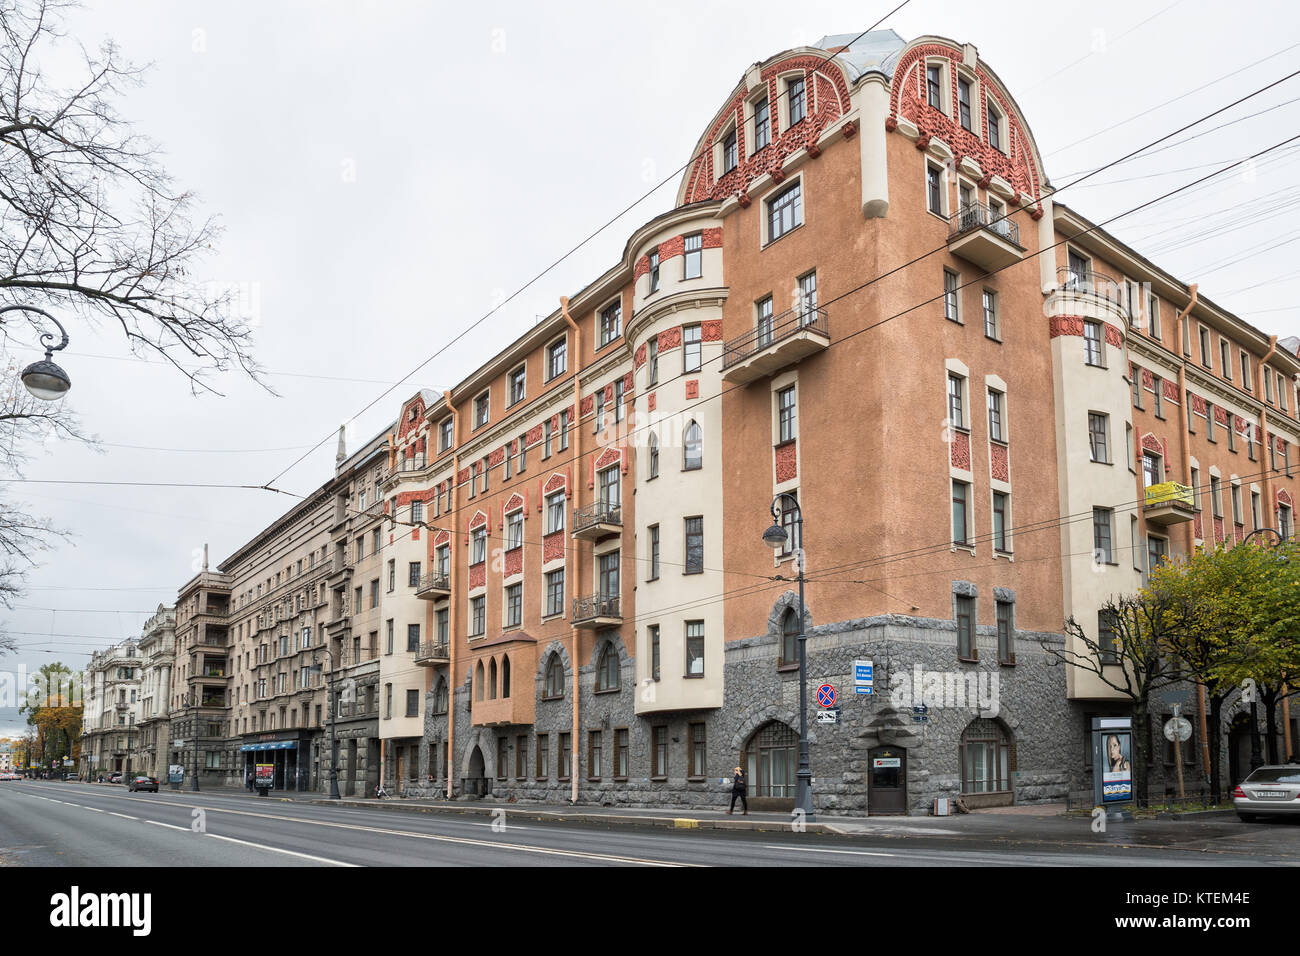 SAINT-PETERSBURG, RUSSIA - OCTOBER 18, 2017: The old building of K.V.Markov's profitable house in the style - Stock Image